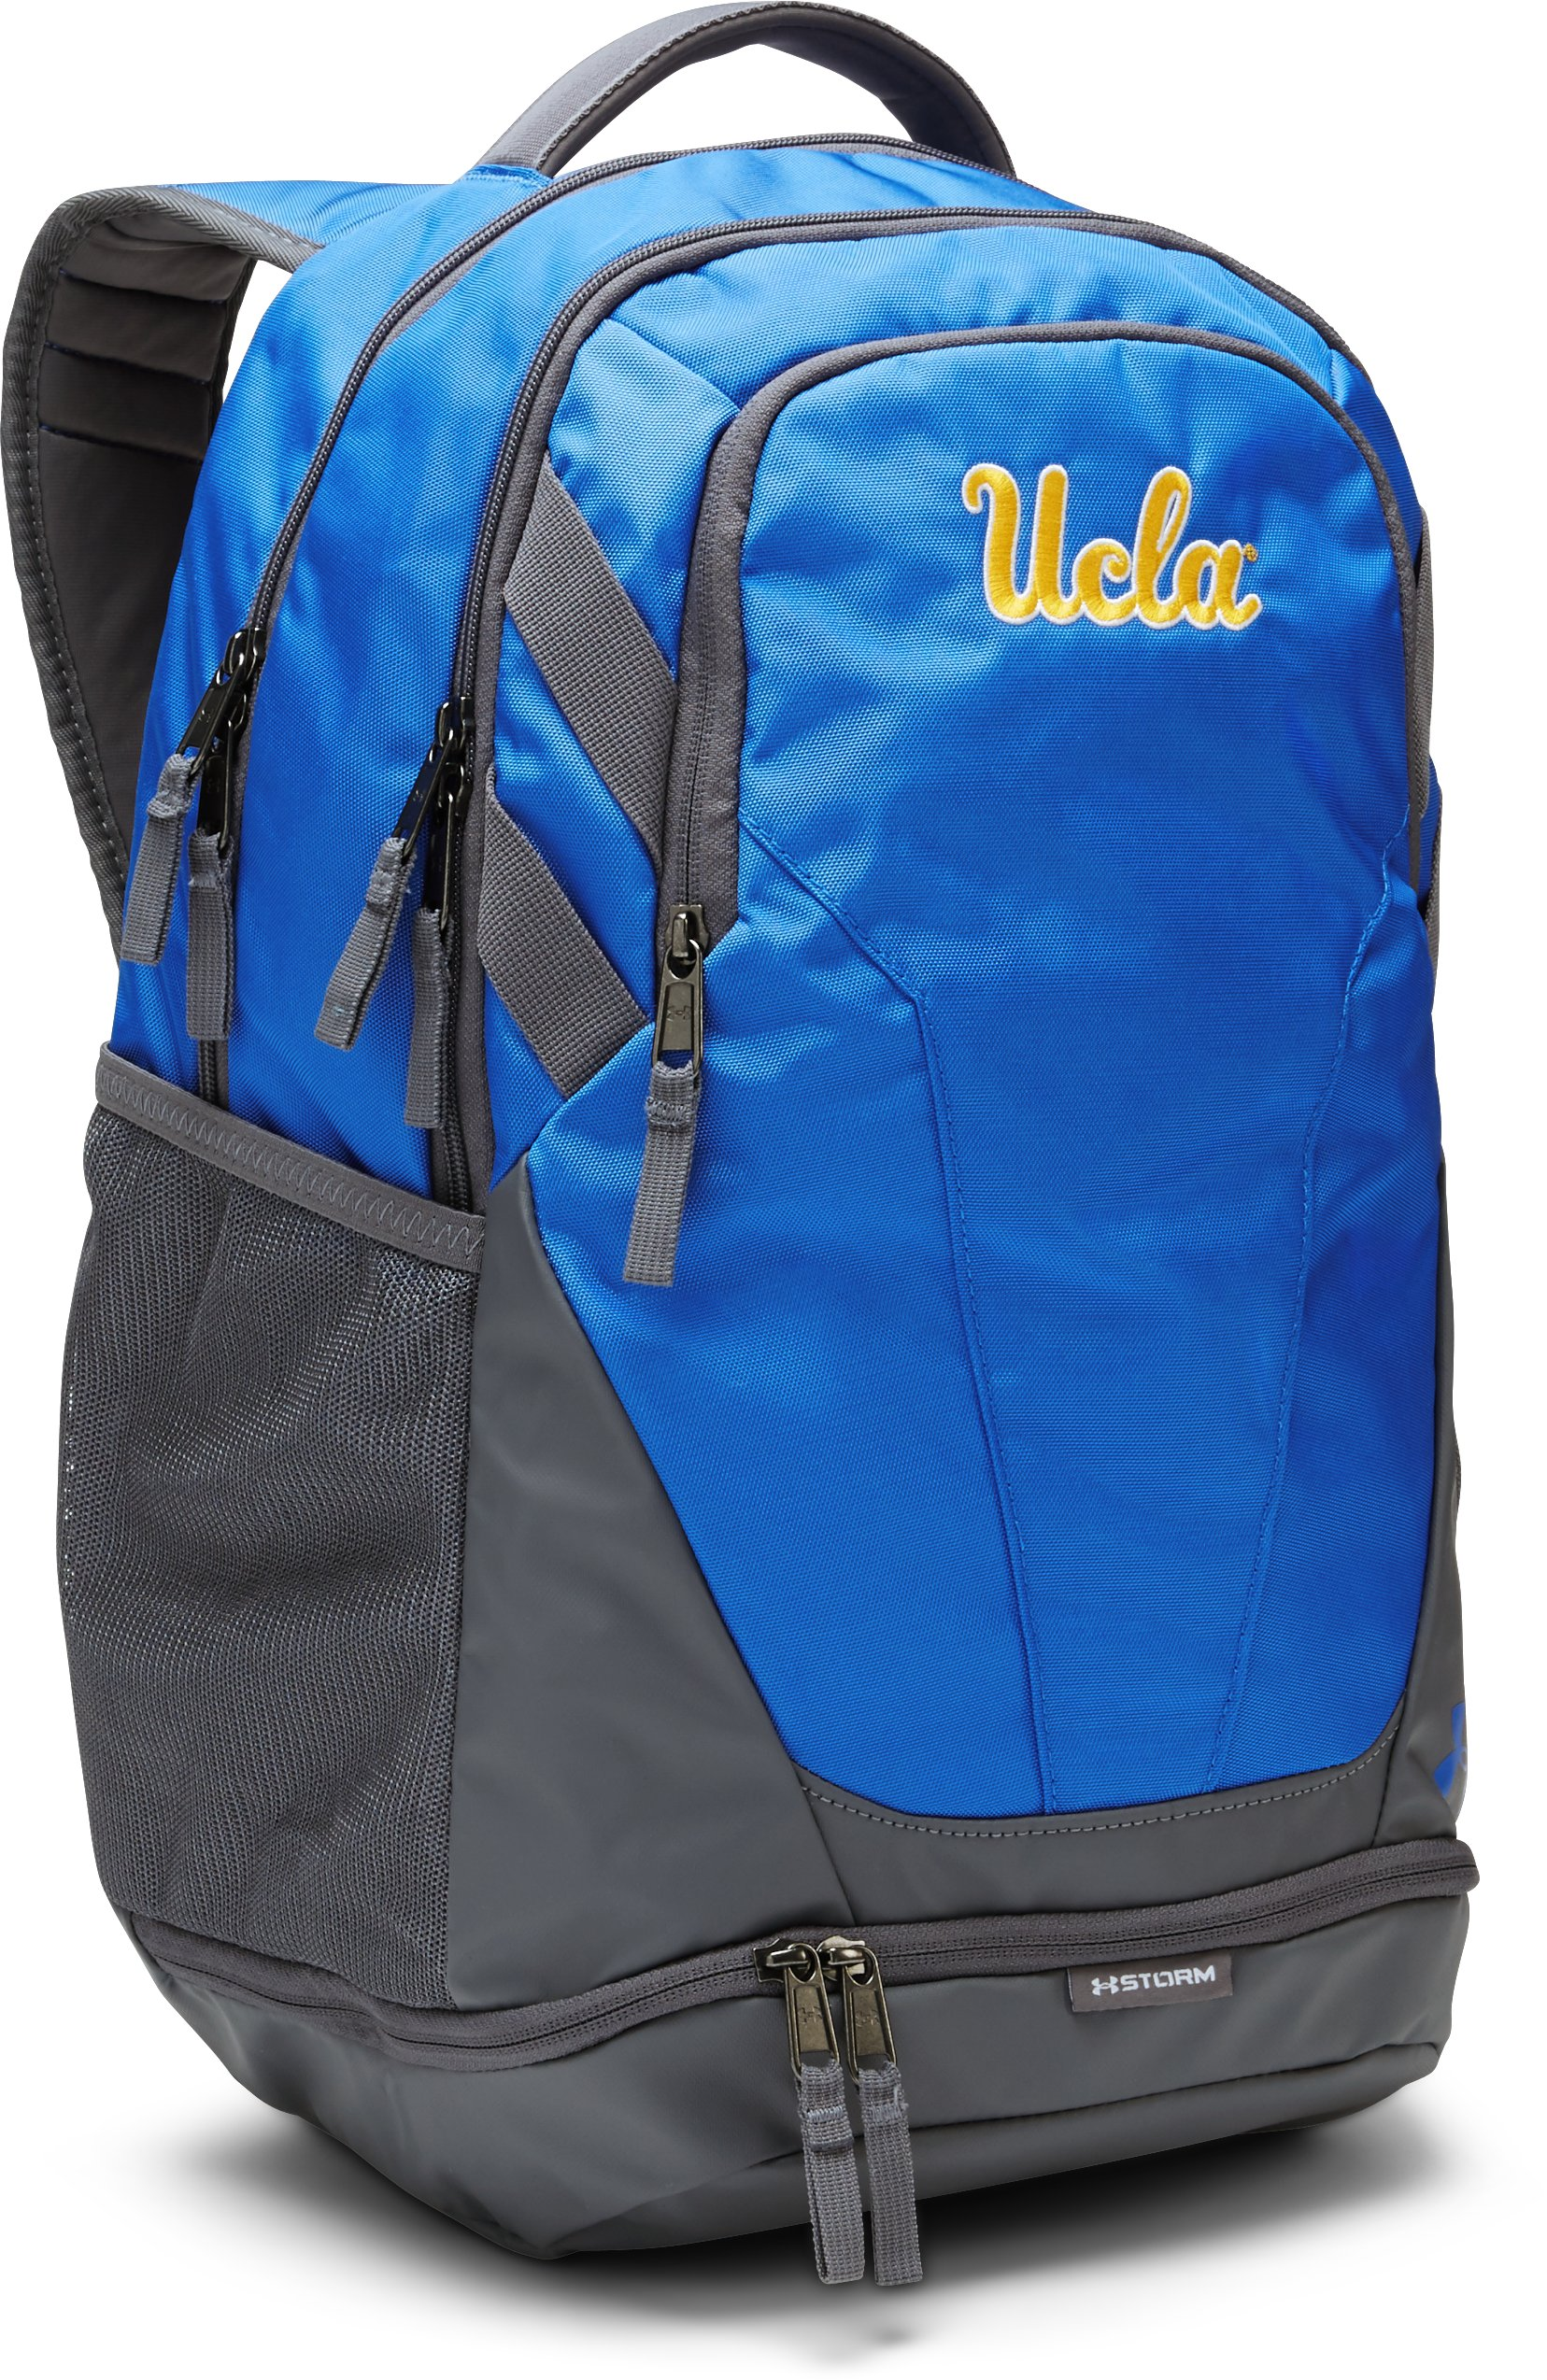 UCLA UA Hustle 3.0 Backpack, White